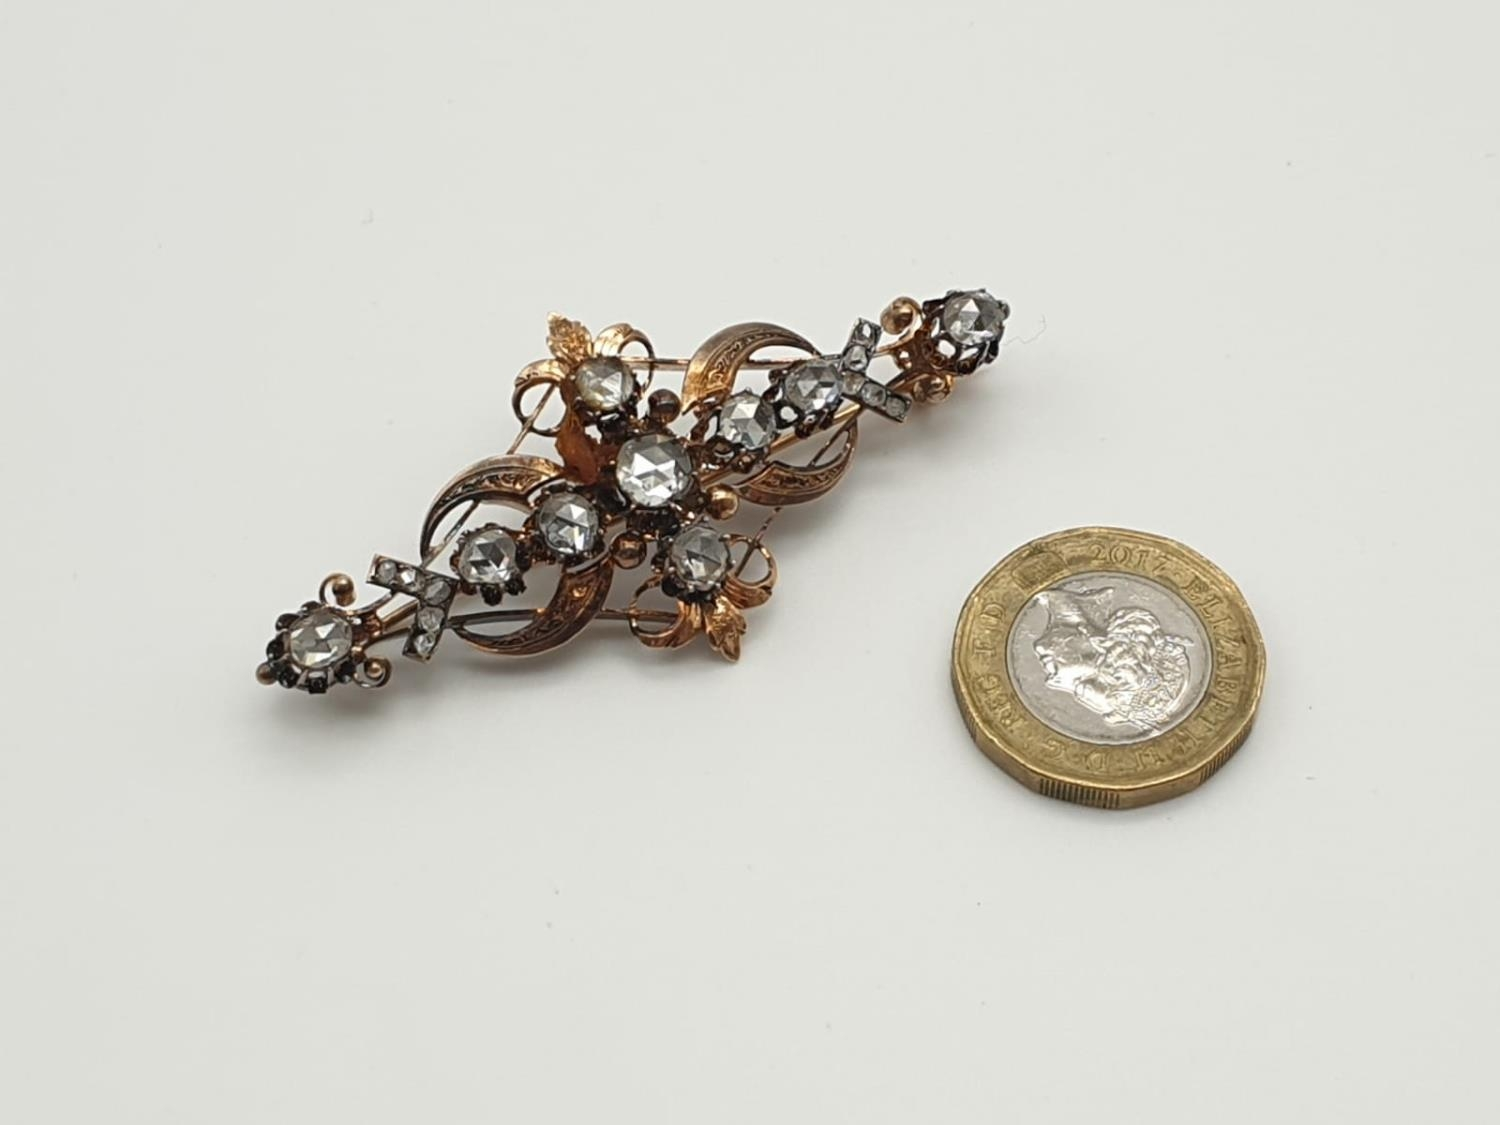 Impressive Antique Edwardian rose gold brooch with over 3ct of rose diamonds, weight 9.1g and 7cm - Image 5 of 5